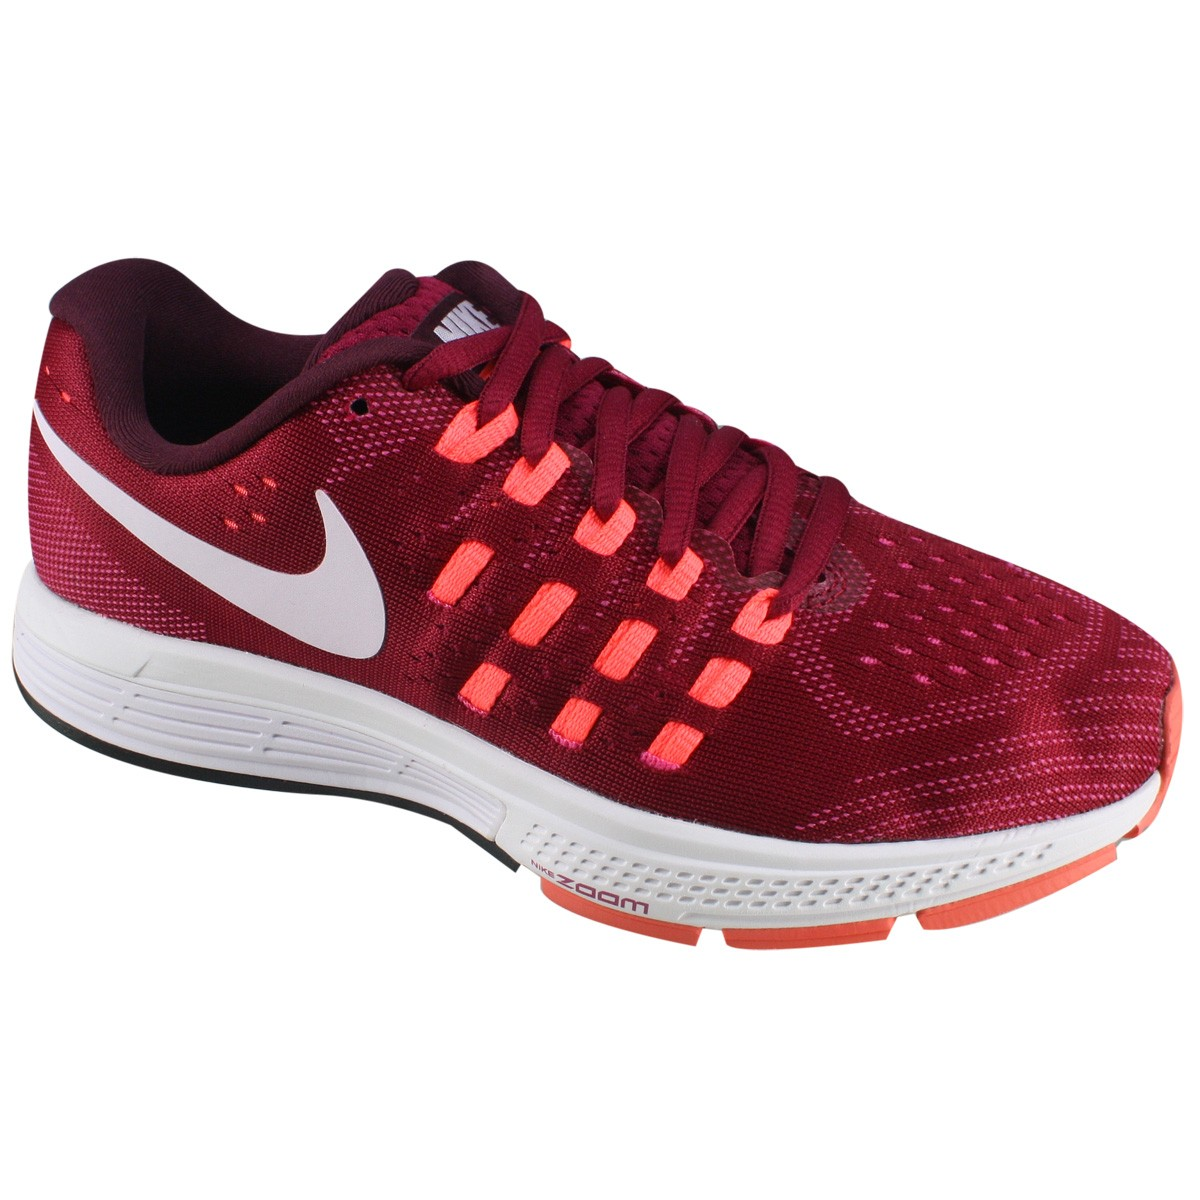 3142411ee4 Tênis Nike Air Zoom Vomero 11 818100-601 Bordo